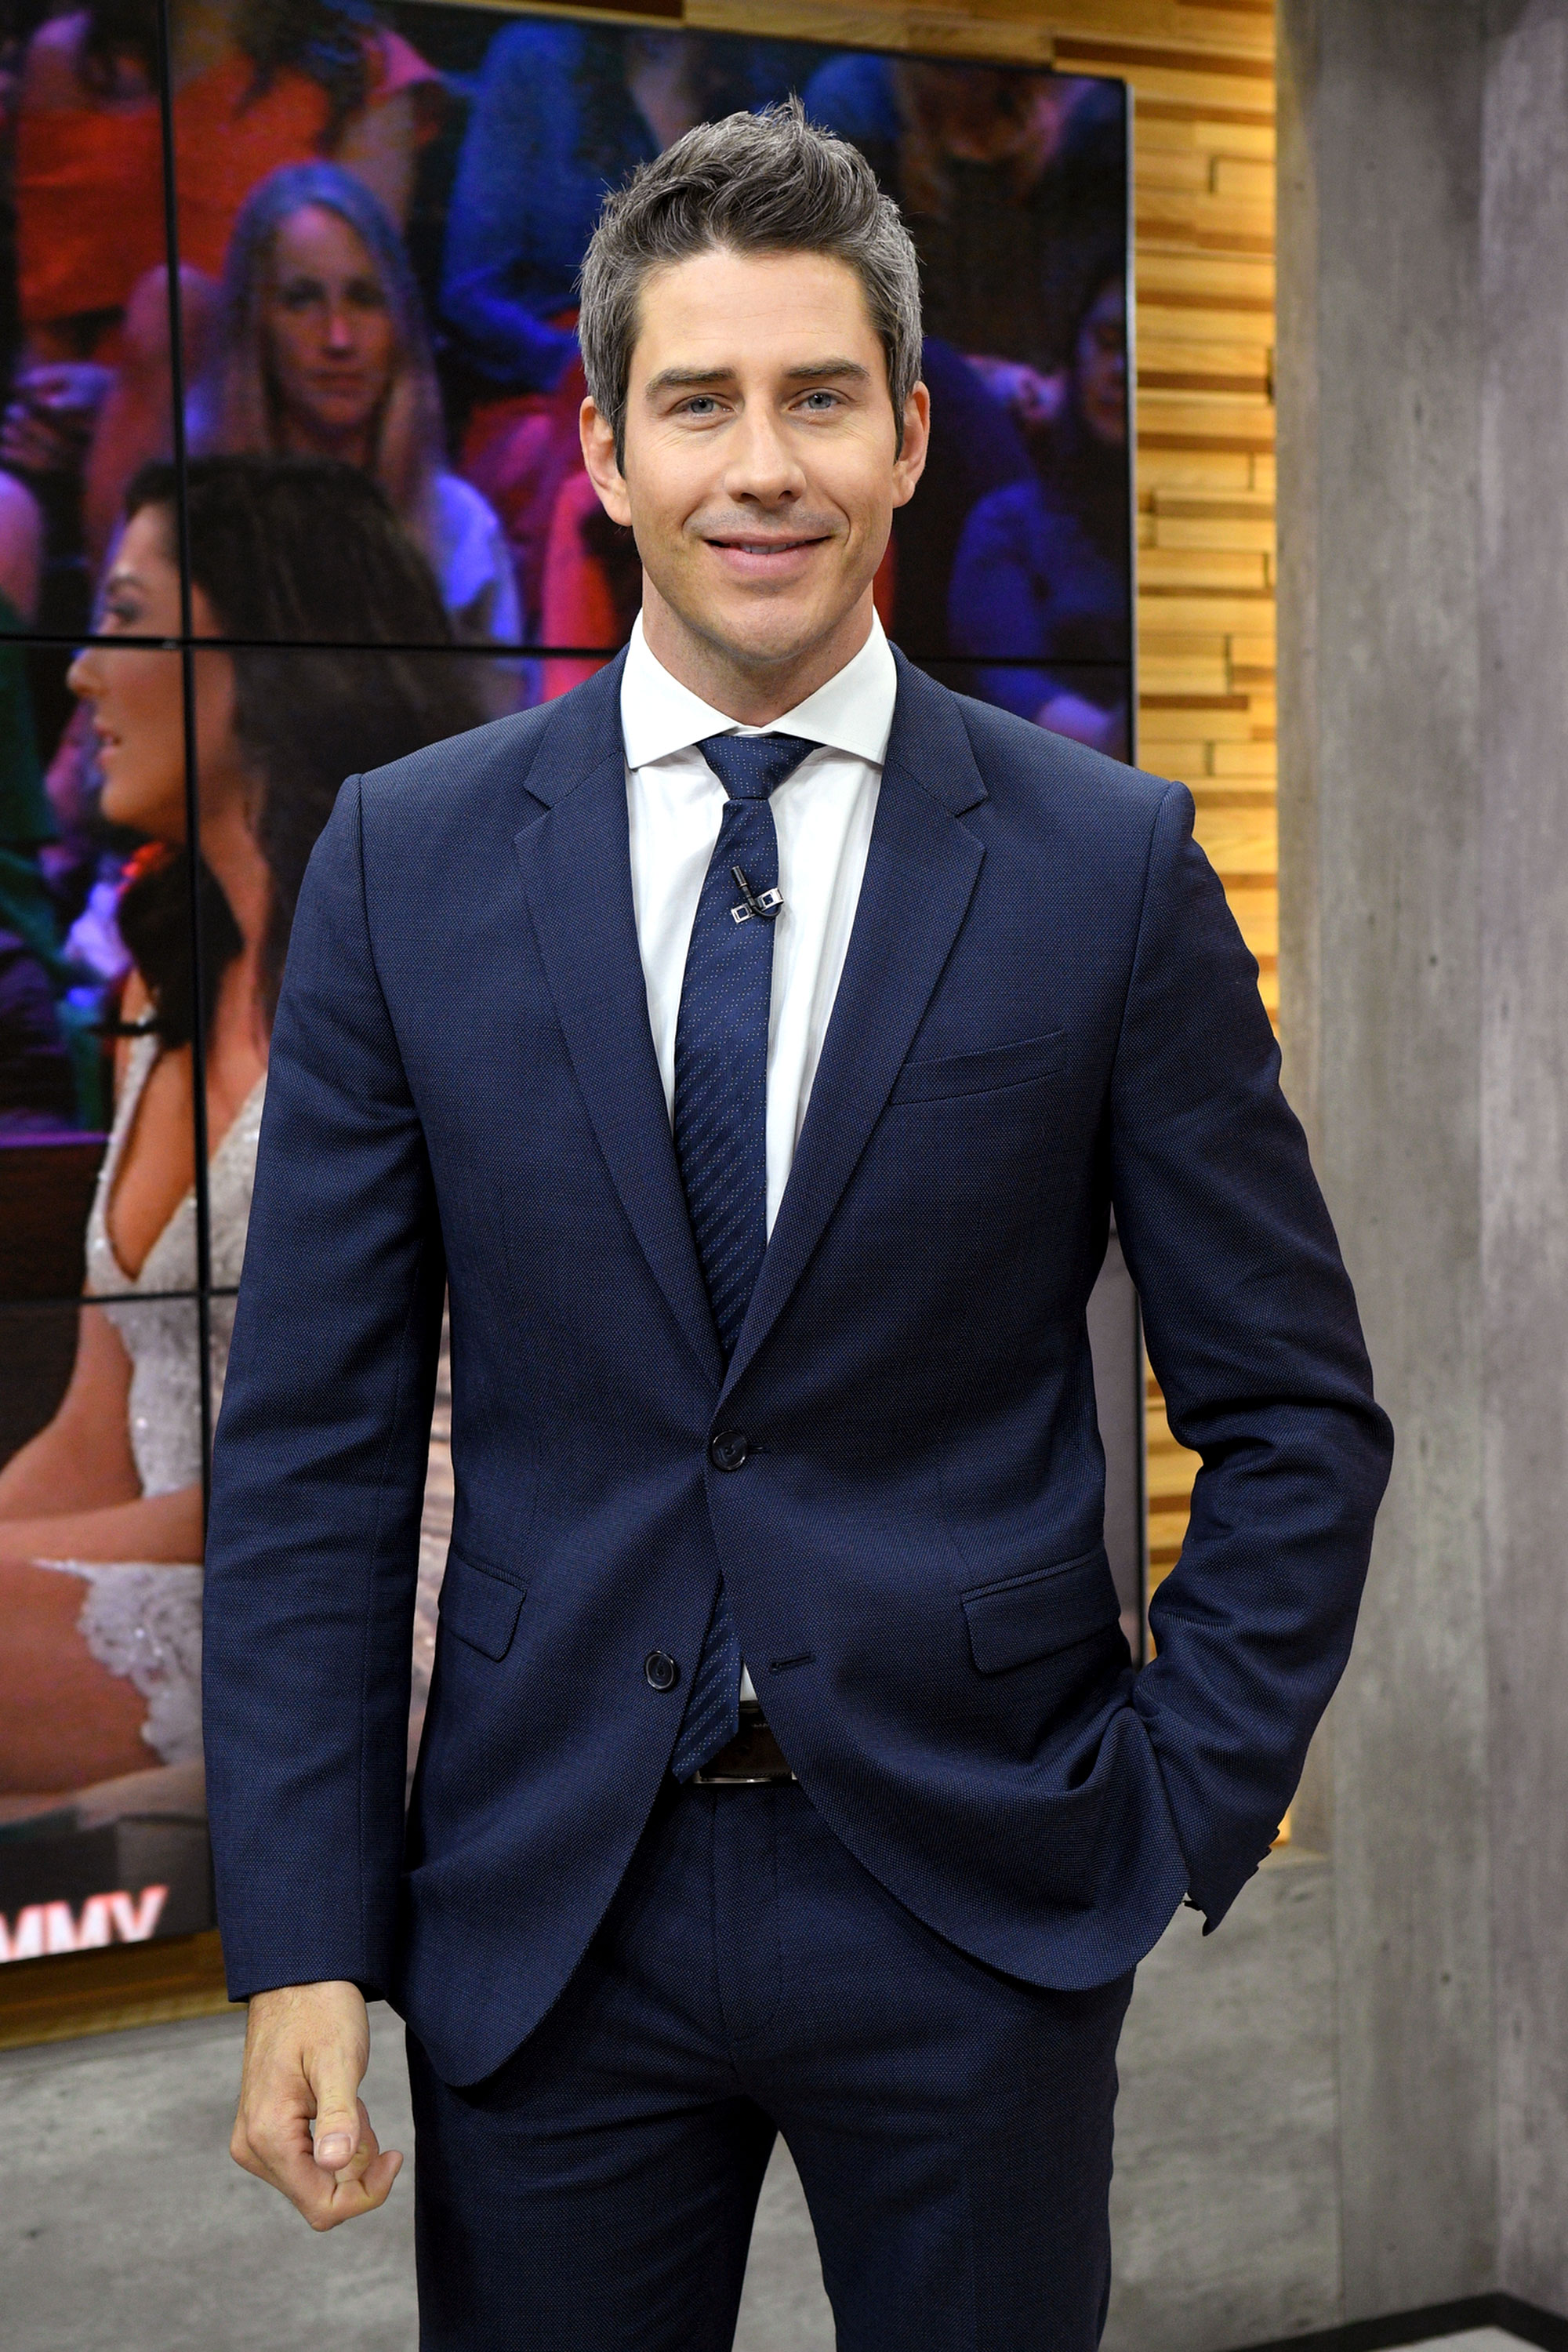 Celebs Weigh in on Kelly Ripa vs 'The Bachelor Arie Luyendyk Jr. Good Morning America - Luyendyk, who was the Bachelor in 2018, dug into the past to blast Ripa , sharing a screenshot of a comment the talk show host wrote to a fan about his relationship with his then-fiancée, Lauren Burnham , not lasting.